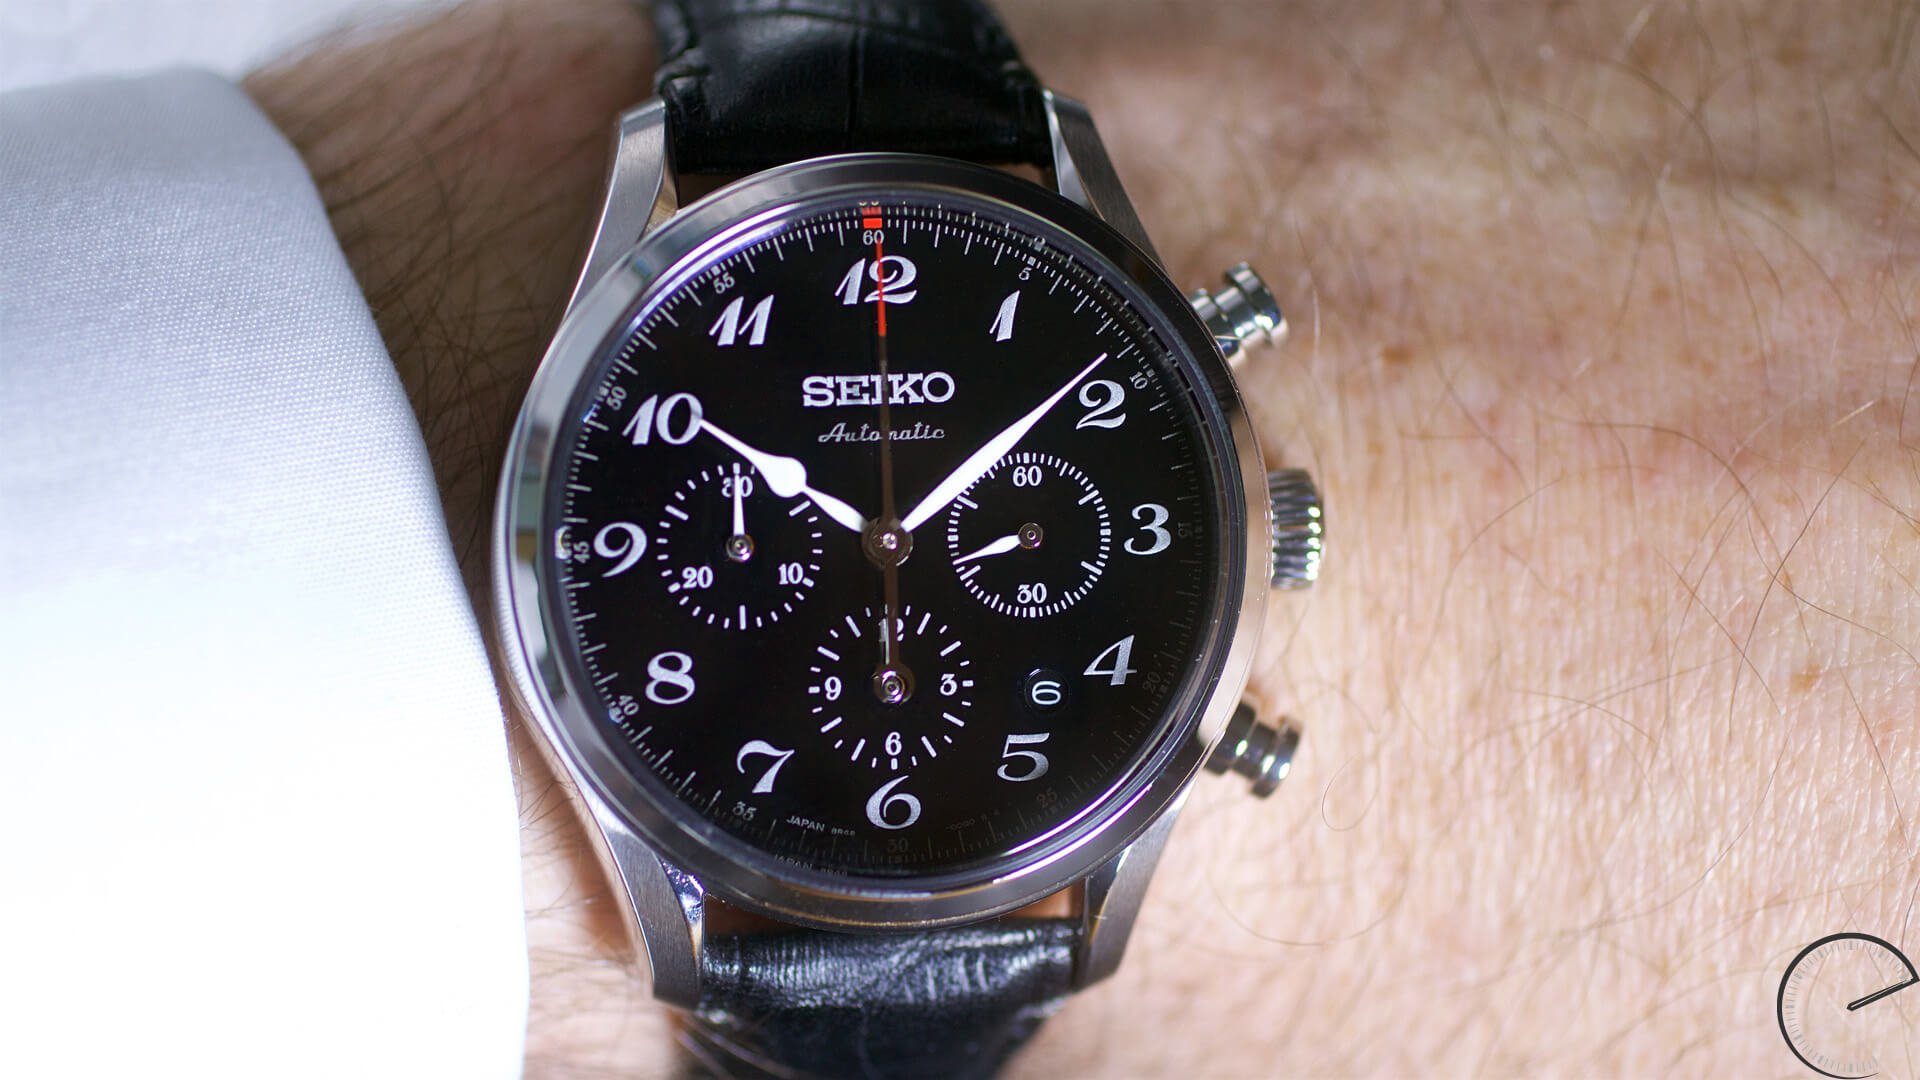 Seiko Presage Automatic Watch 60th Anniversary Limited Edition Chronograph SRQ021J1